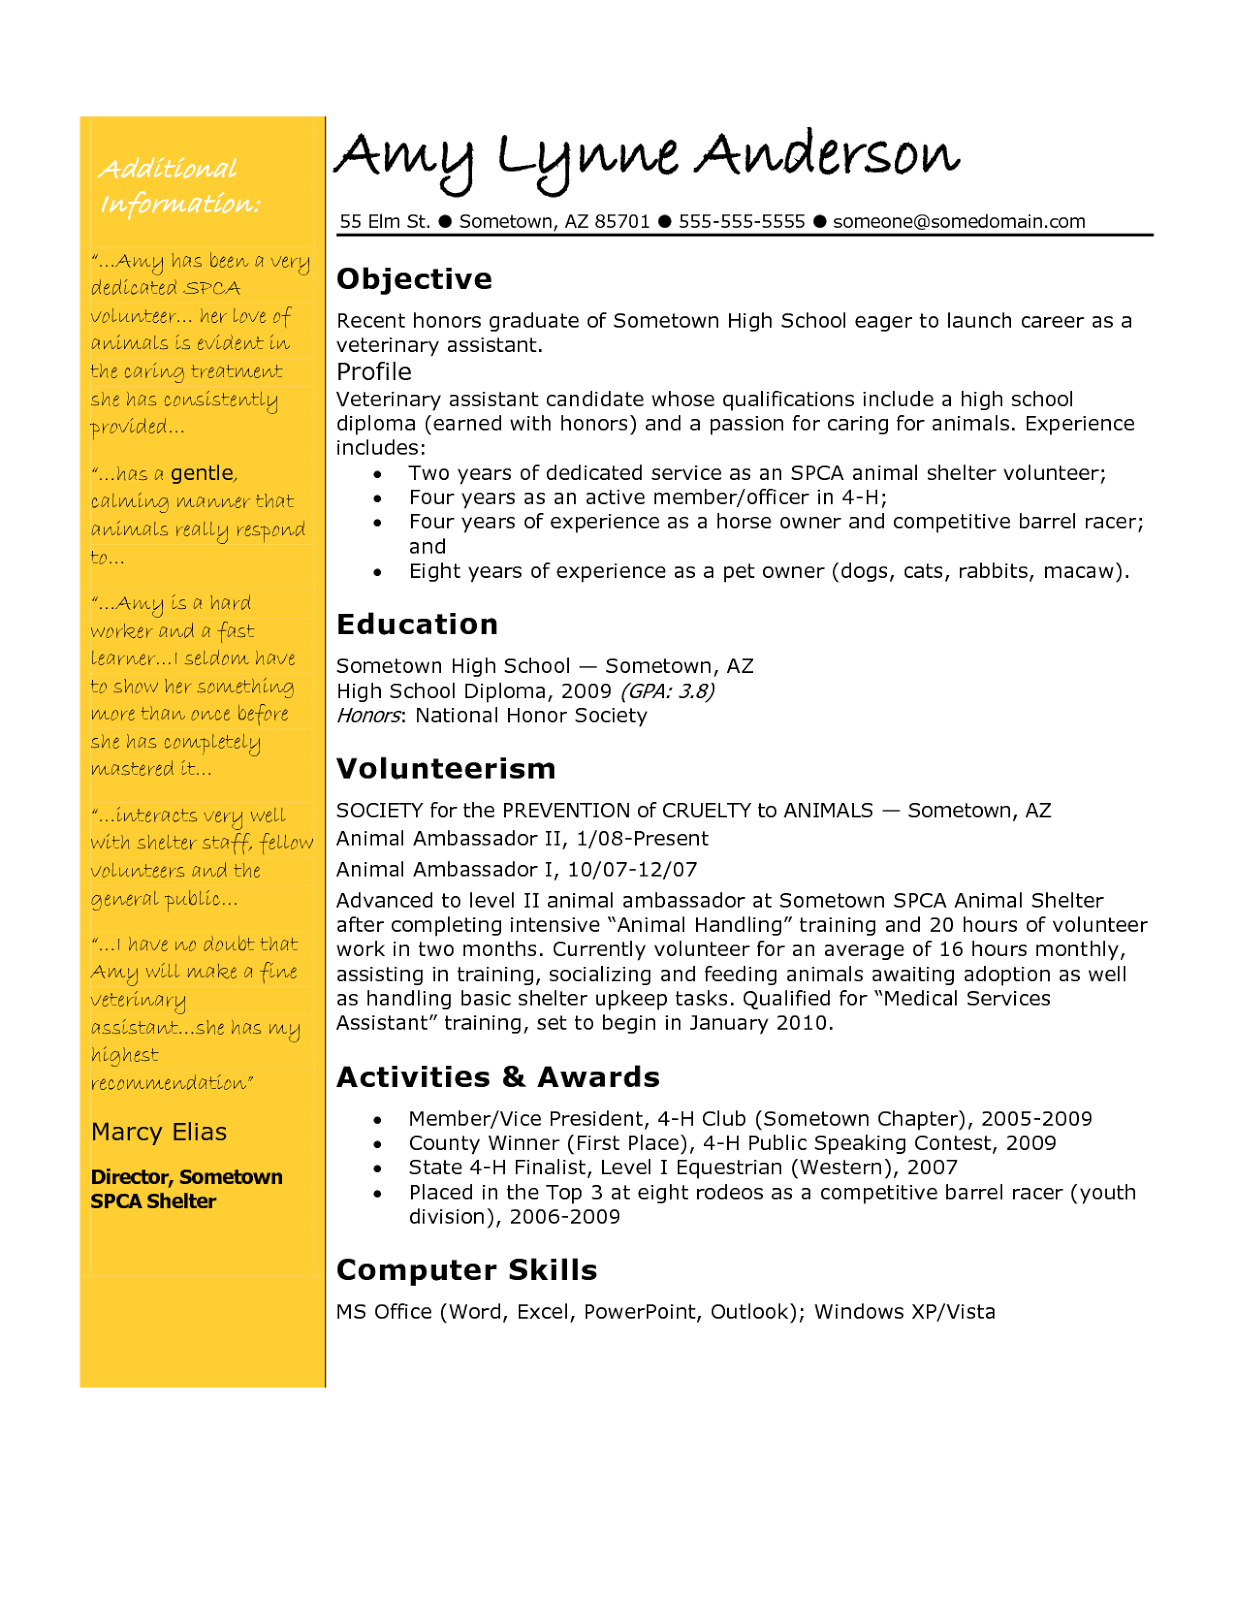 Pharmacy Technician Objective For Resume Sample Shopgrat Design Synthesis  Resume Templates Dialysis Technician  Pharmacy Technician Resume Objective